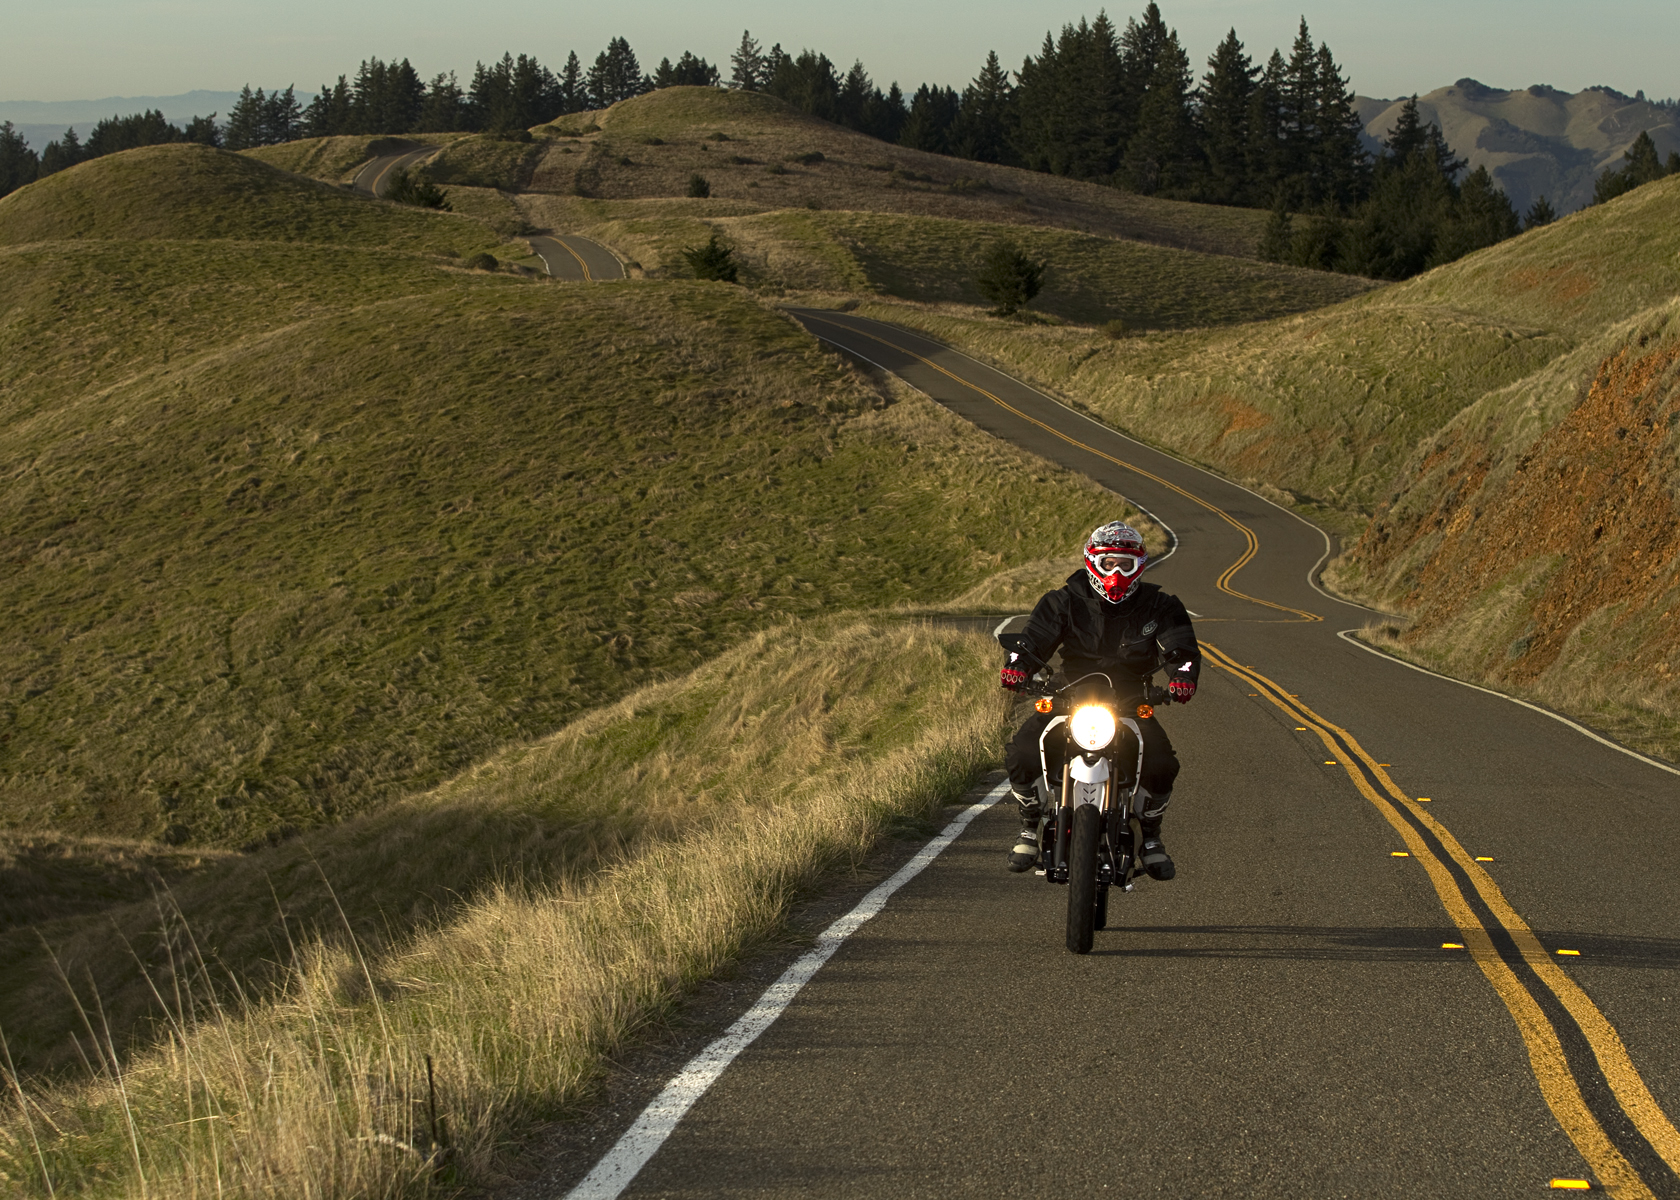 2011 Zero DS Electric Motorcycle: Cruising Uphill